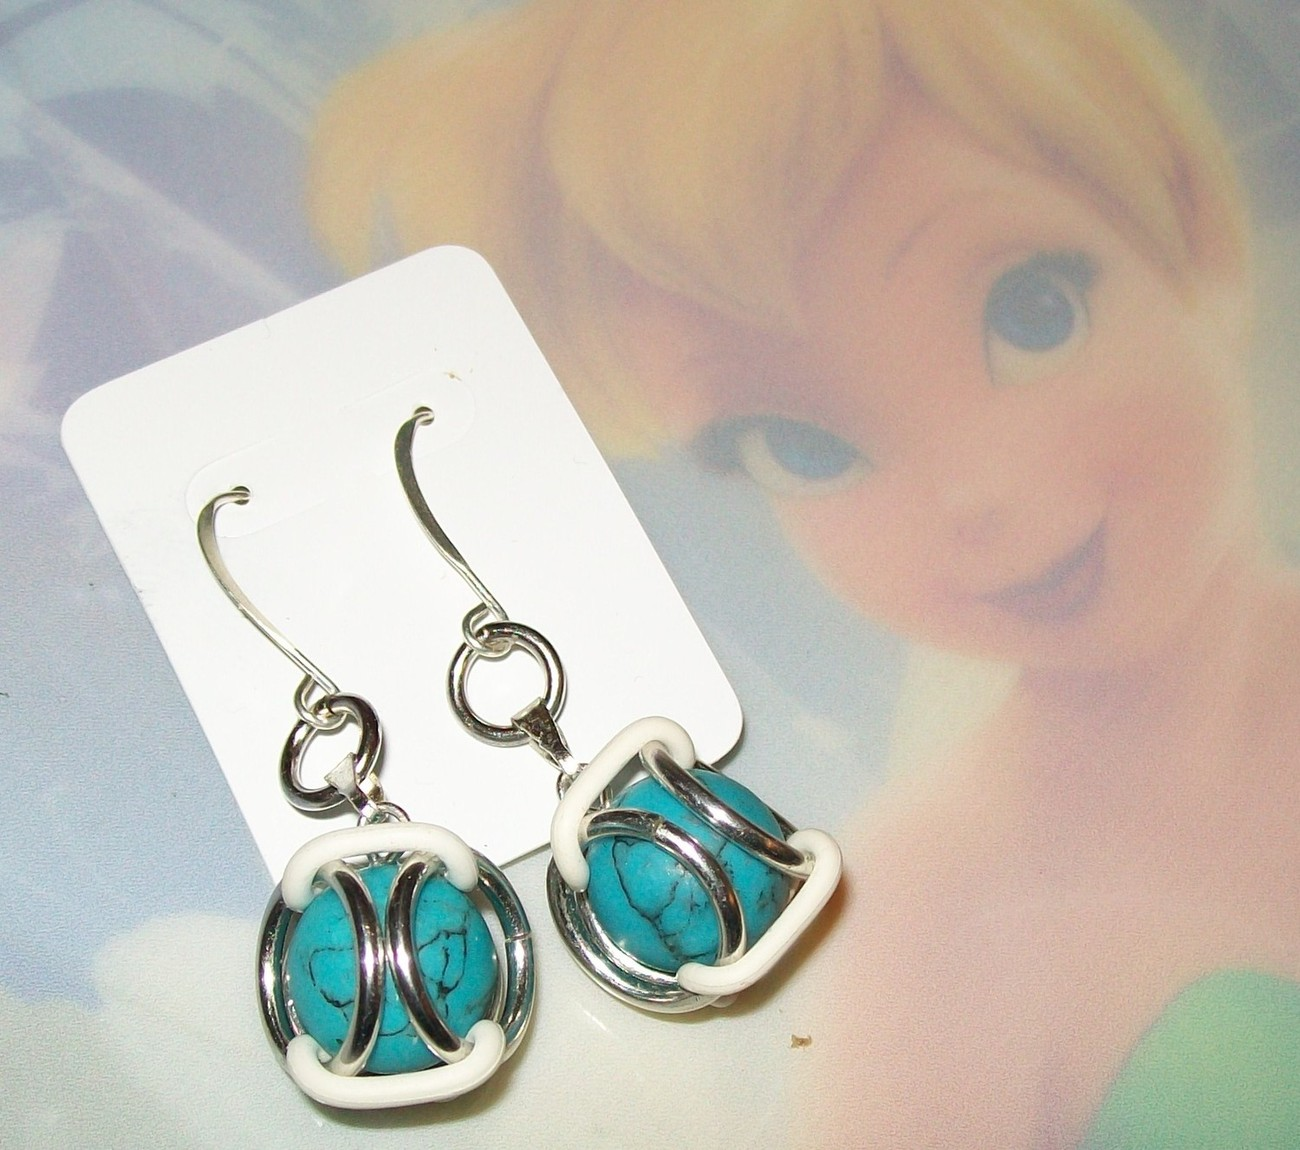 Trip Chainmaille Earrings